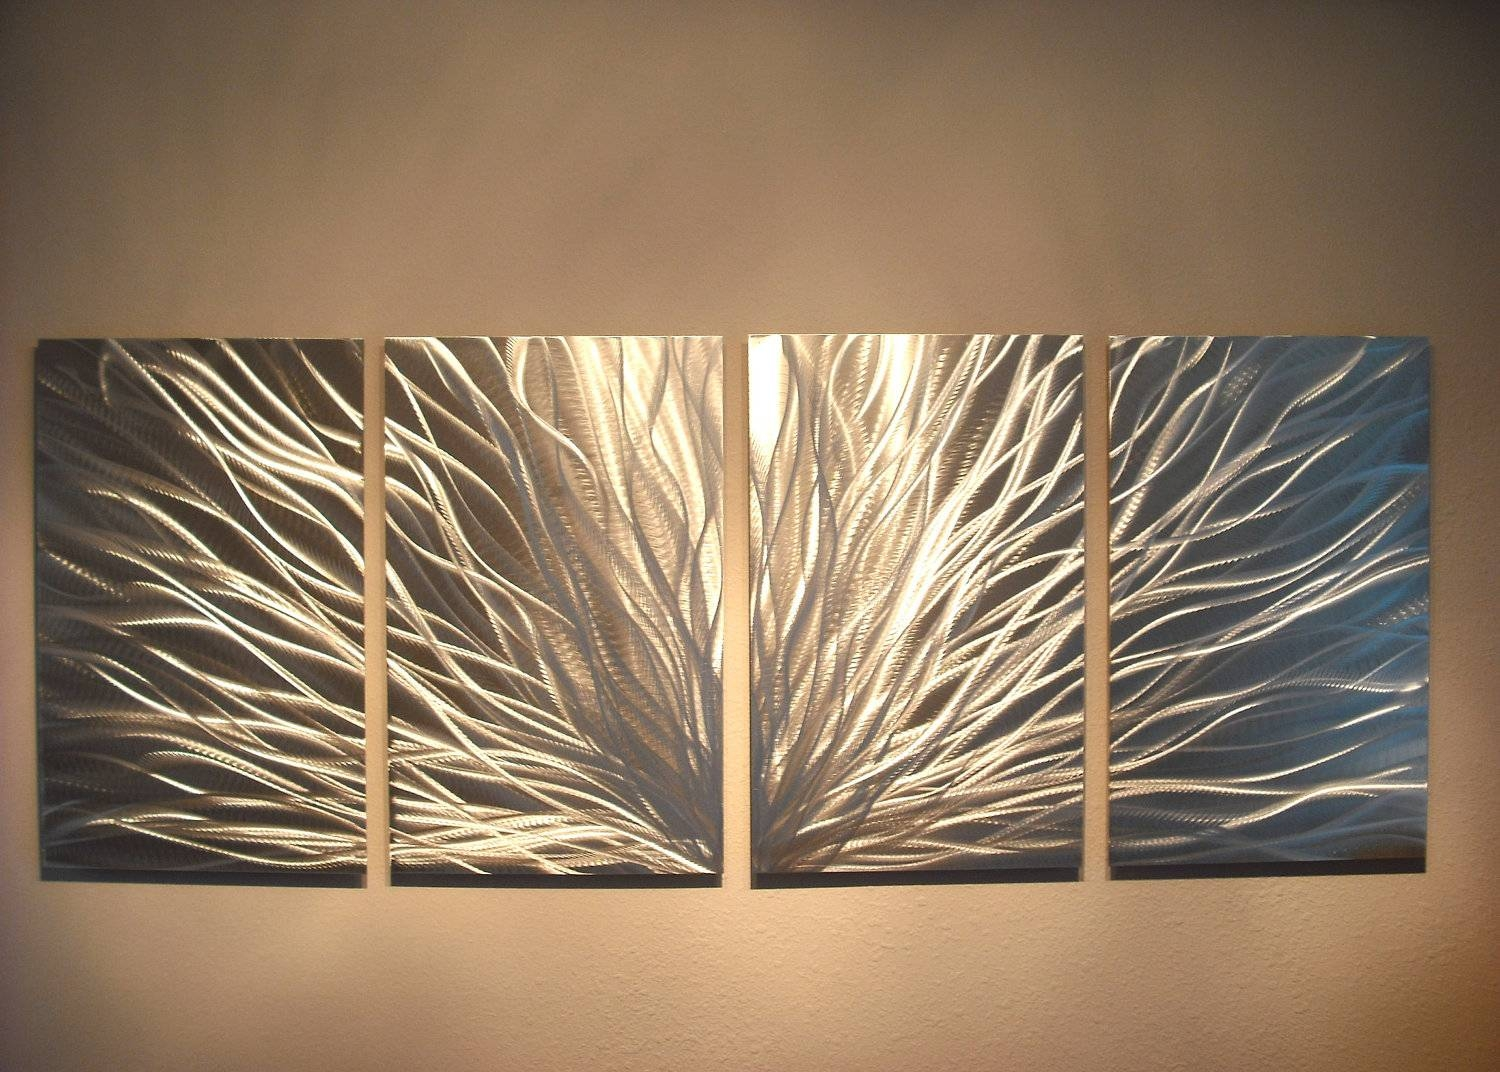 Radiance – Abstract Metal Wall Art Contemporary Modern Decor Pertaining To Most Up To Date Decorative Metal Wall Art Panels (Gallery 1 of 20)